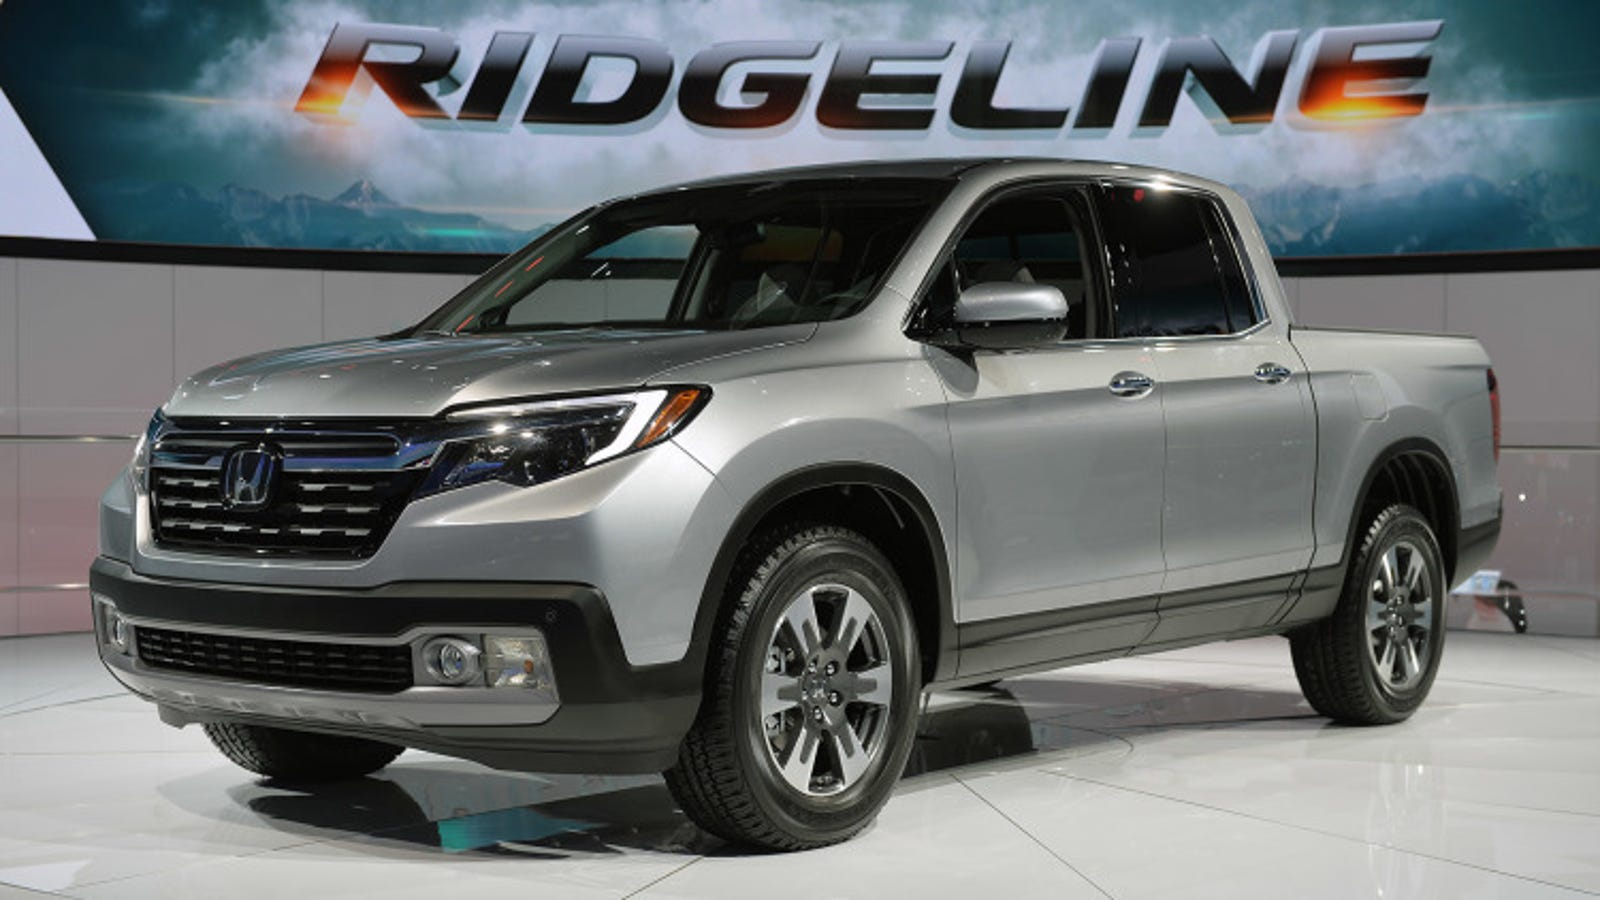 Why I Think The 2017 Ridgeline Being Fwd Based Is Actually Clever Boat Towing With Honda